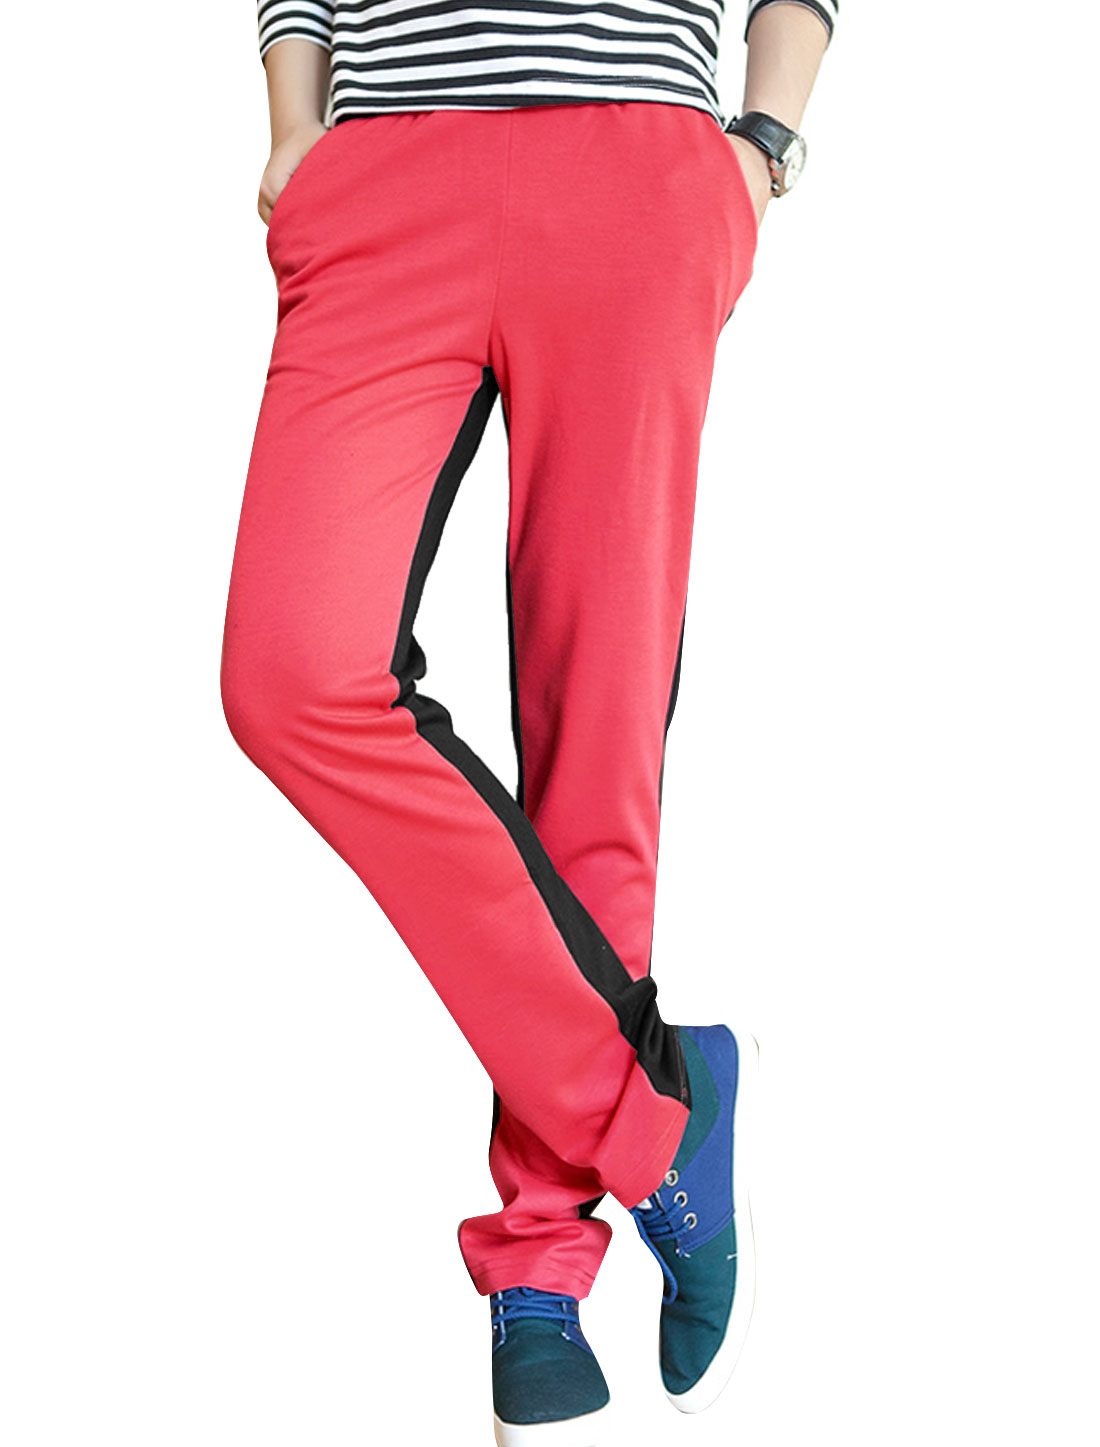 Men Stretchy Drawstring Waist Colorblock Sport Pants Watermelon Red W30